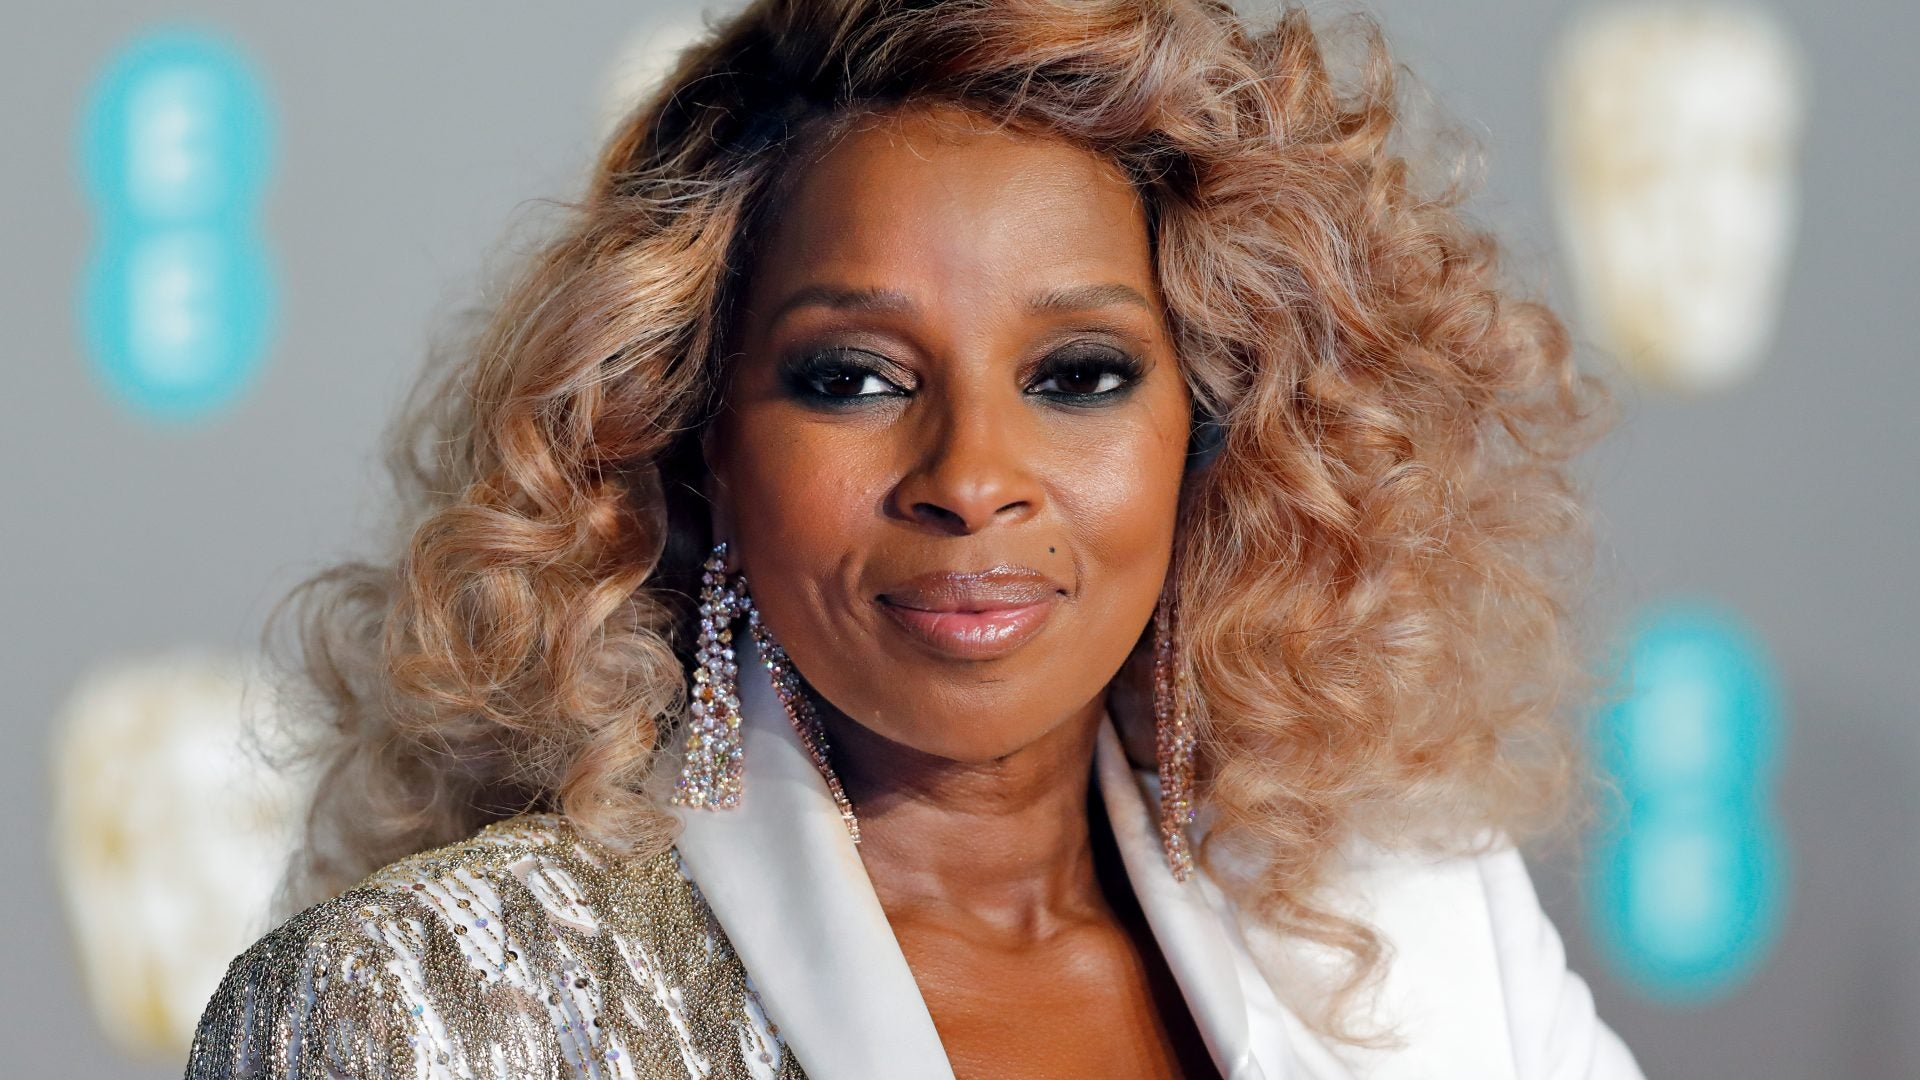 Mary J. Blige Shares Her Top Holiday Gift Picks And We're In Love